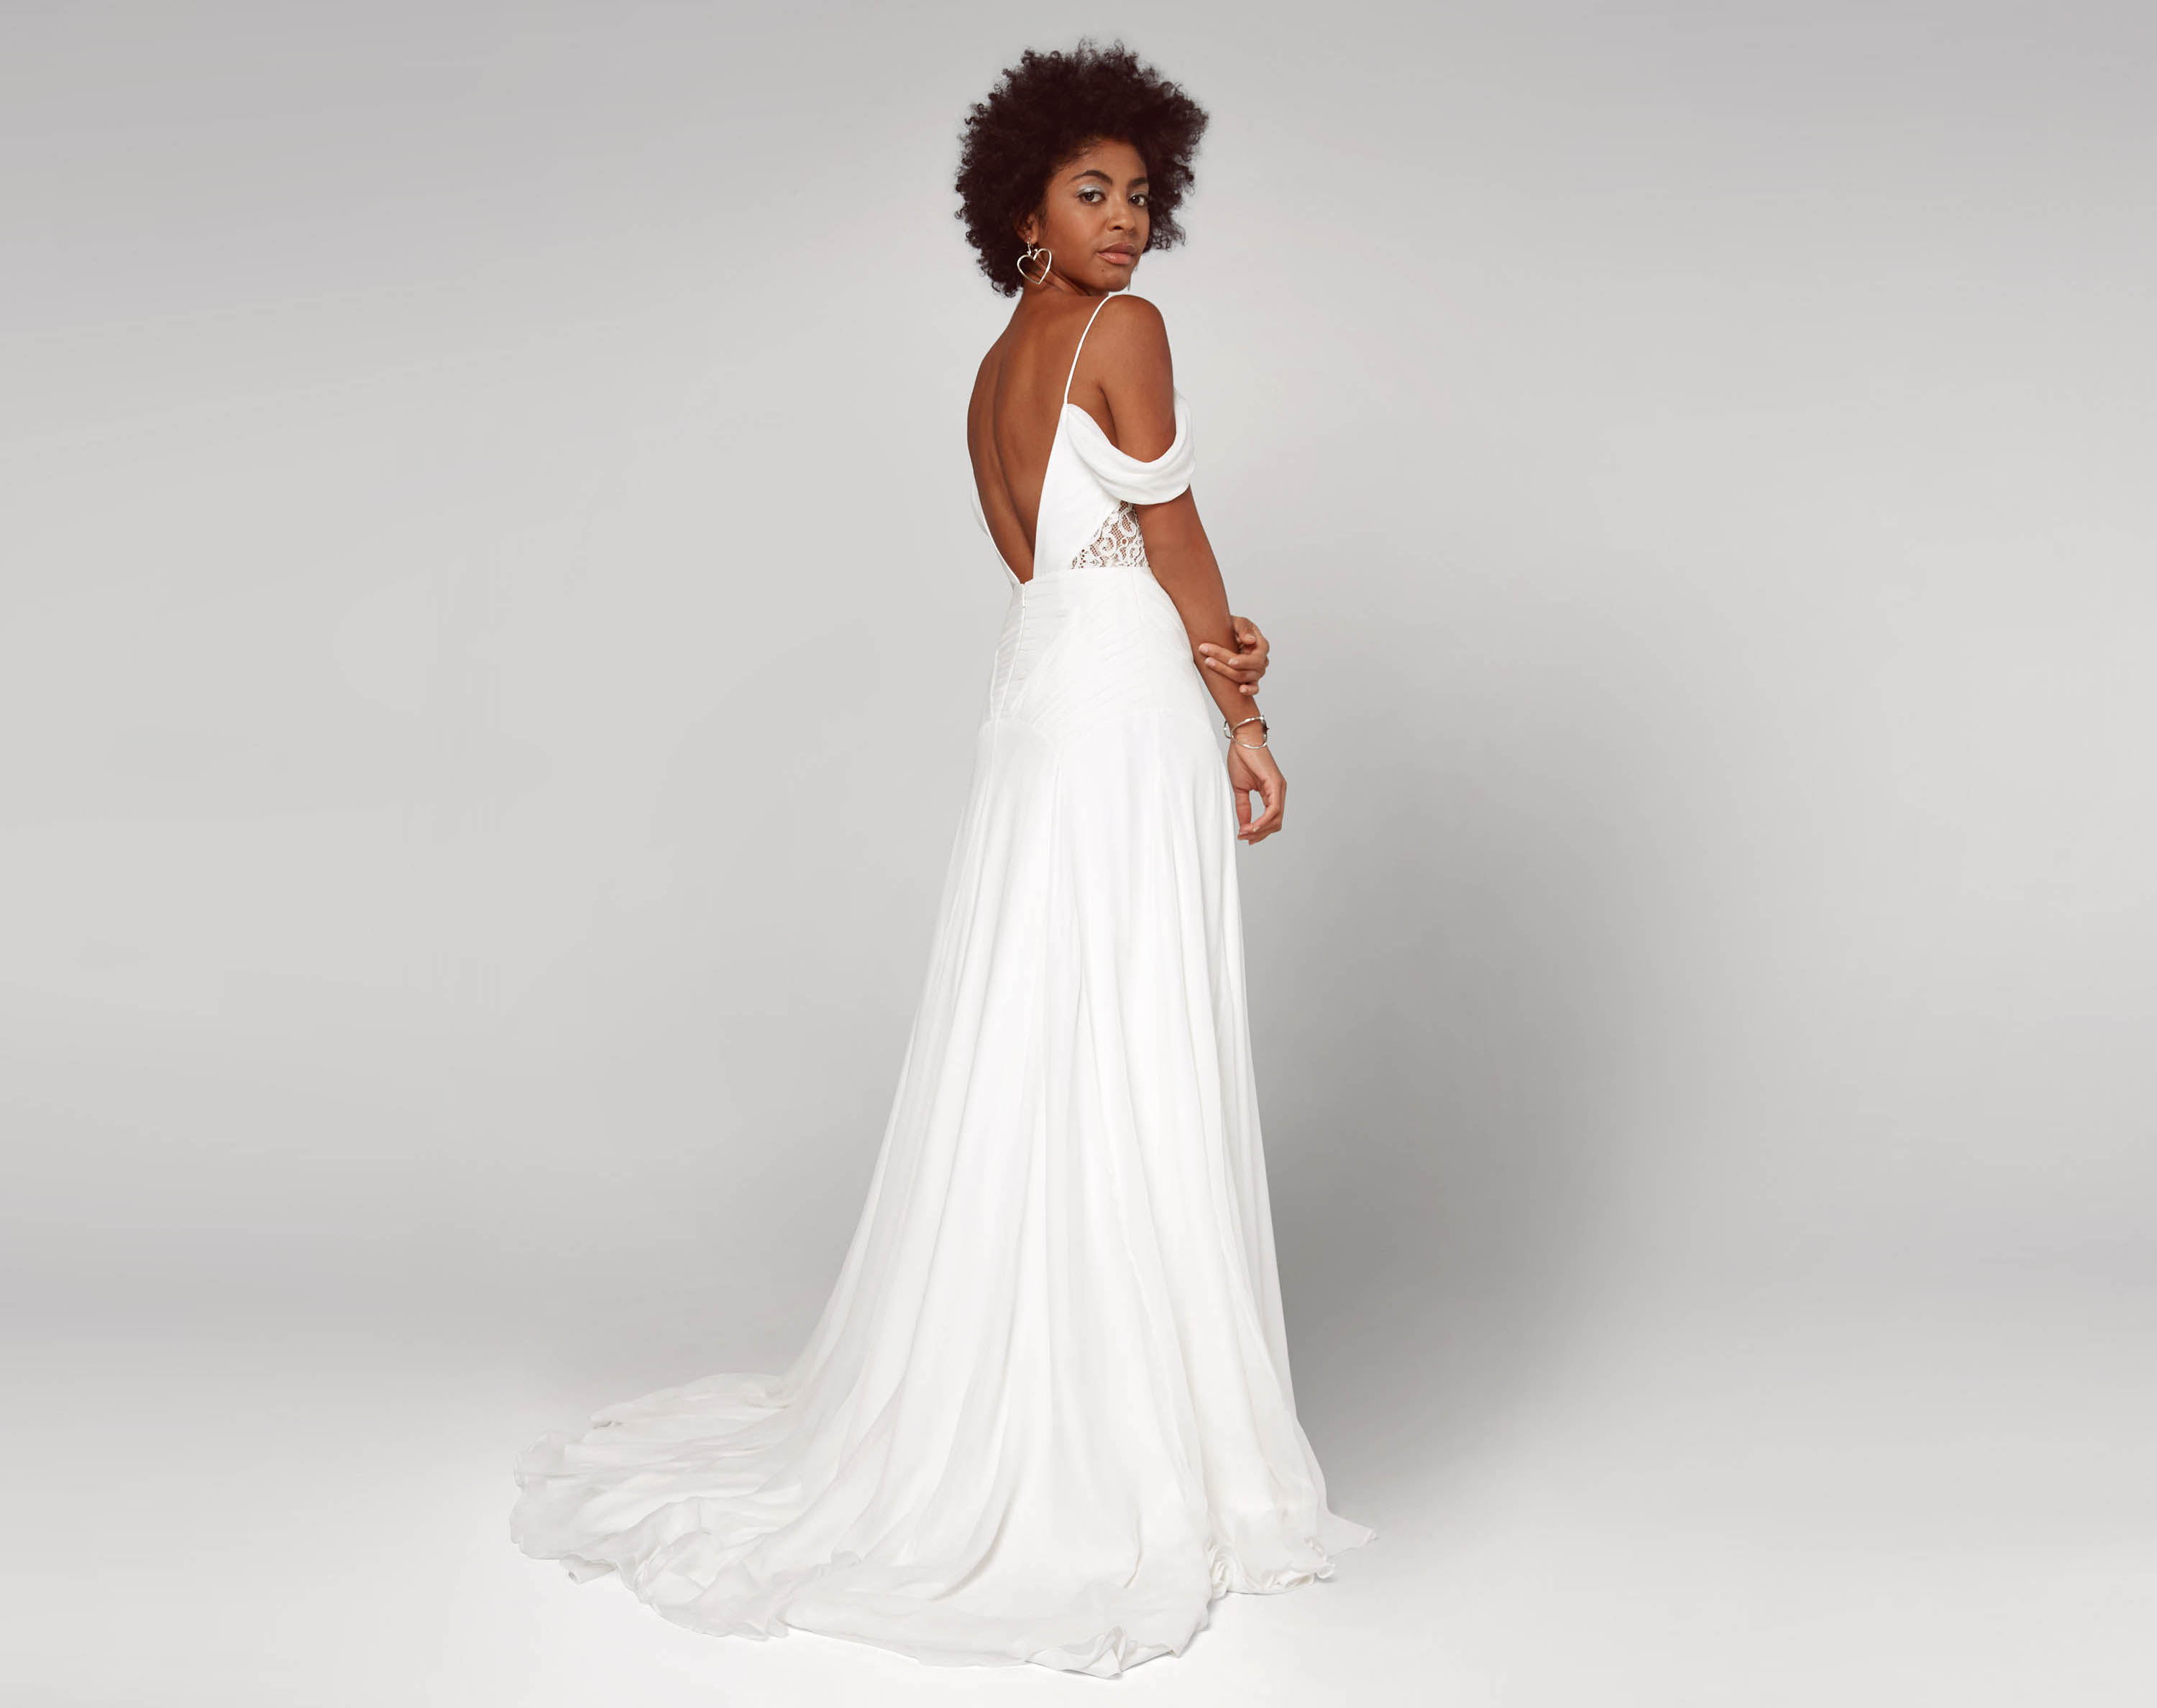 Inexpensive, Pretty Wedding Dresses For Under $1,000